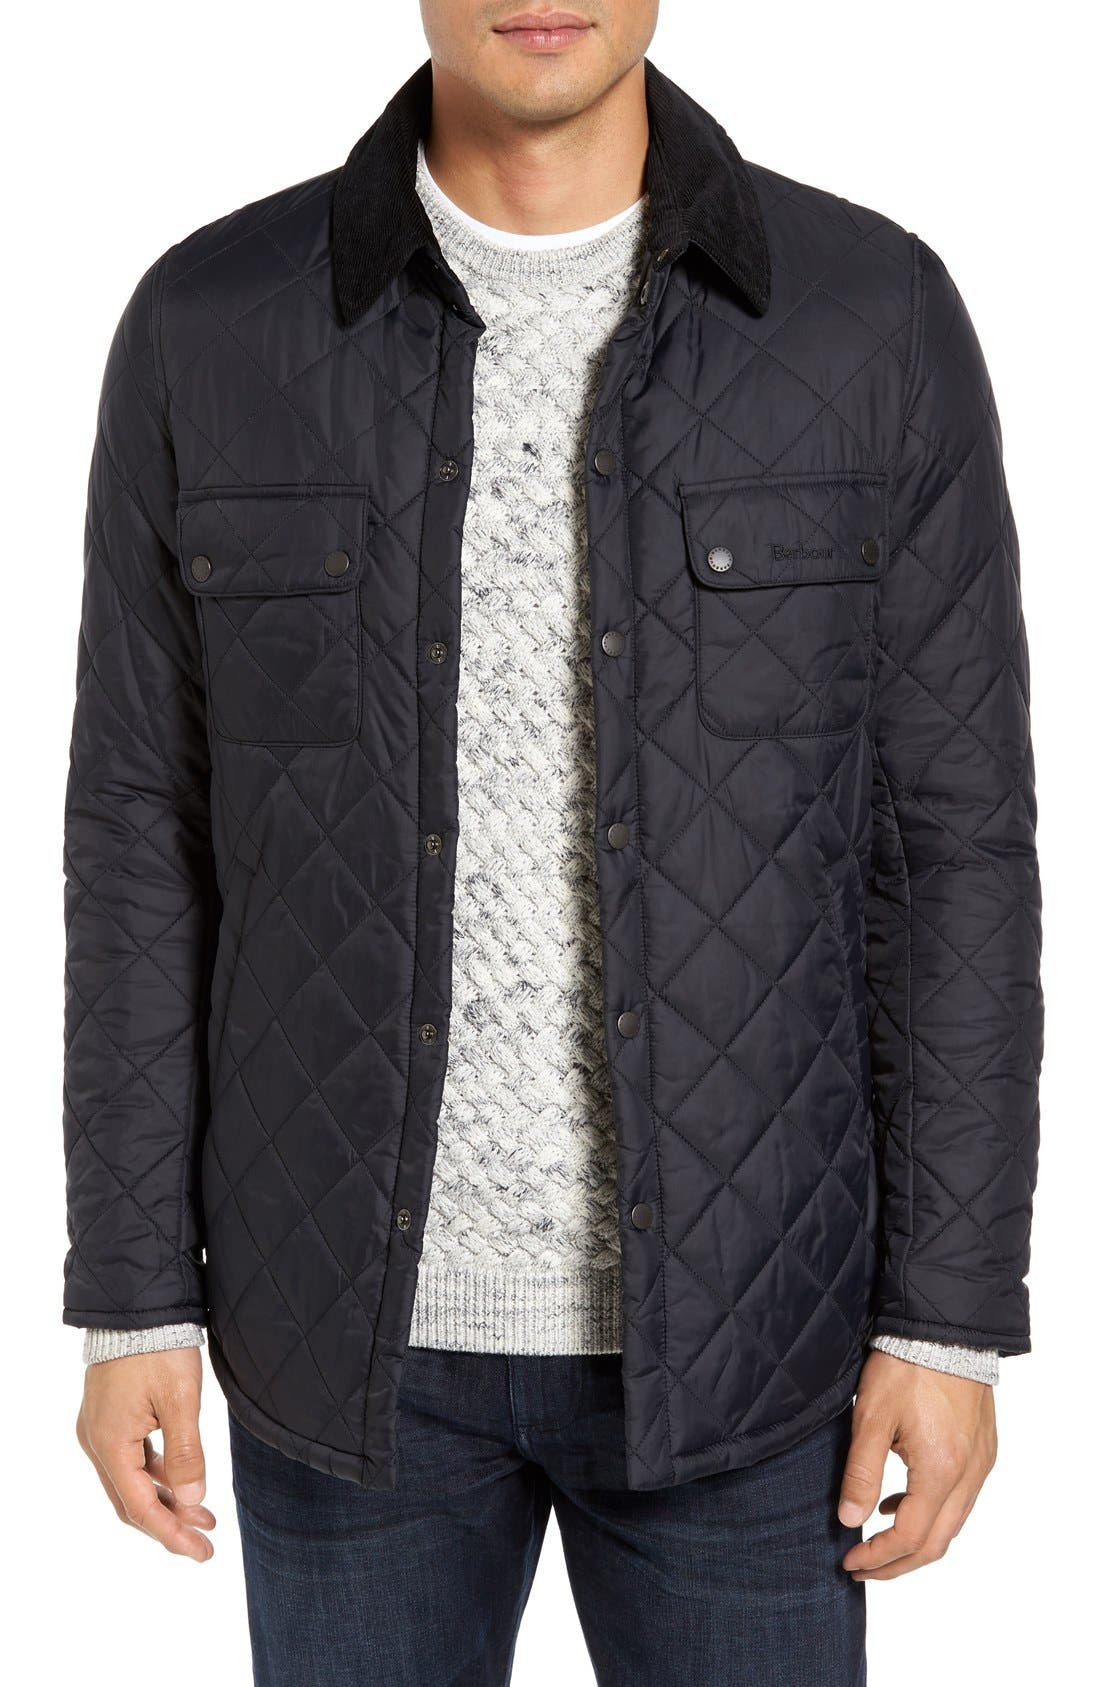 Barbour 'Akenside' Regular Fit Quilted Jacket